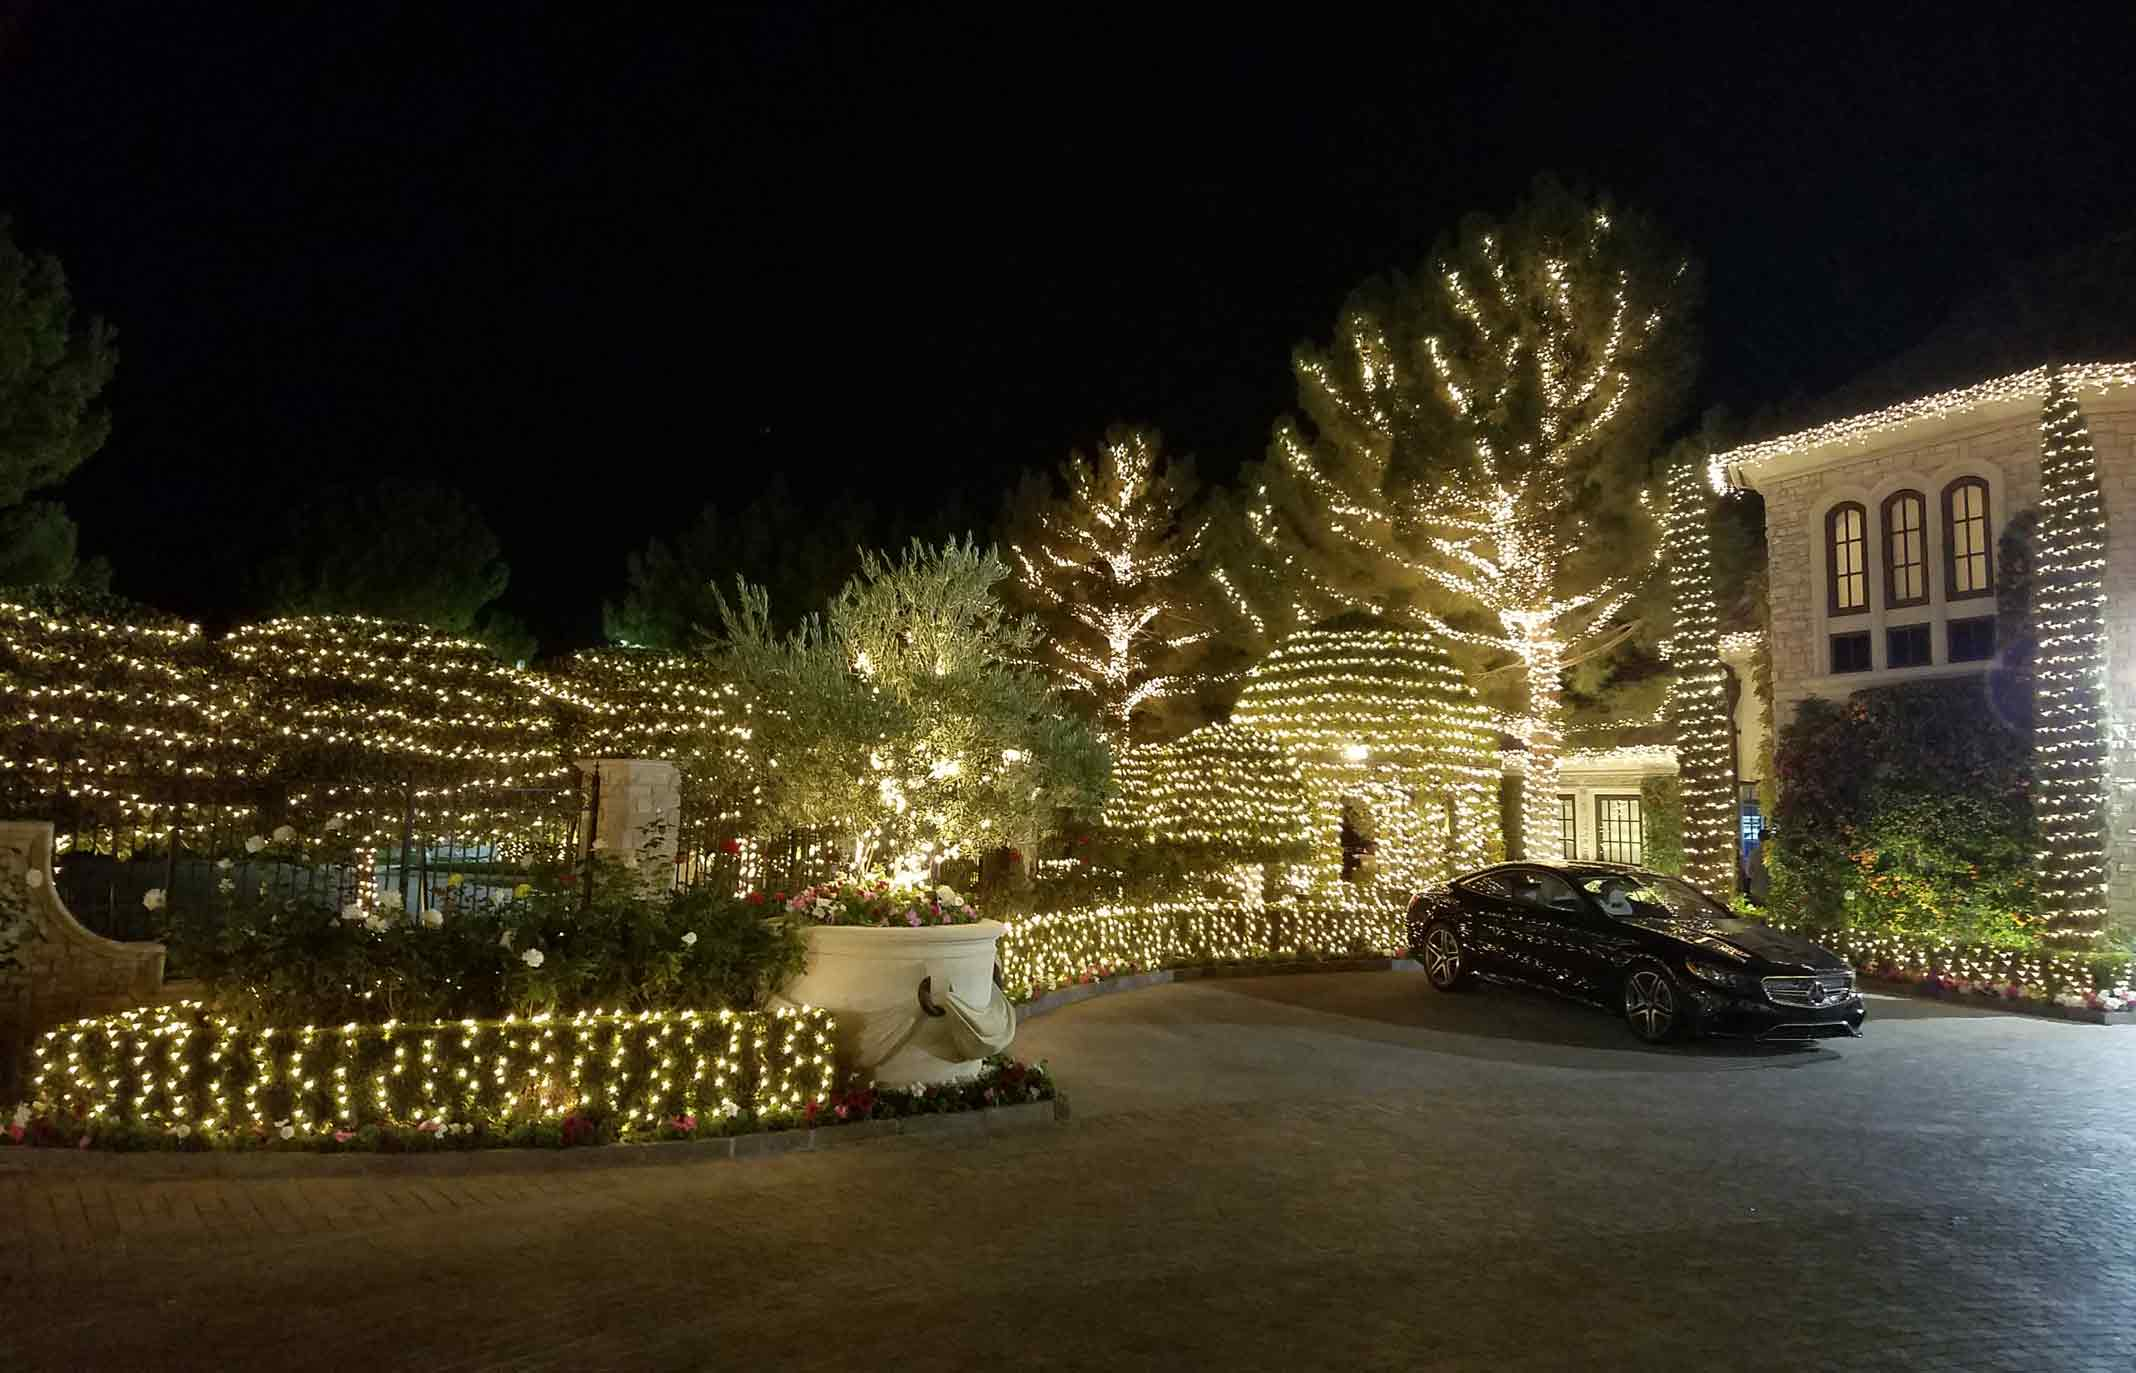 holiday lighting service by Holiday Decorations in Las Vegas